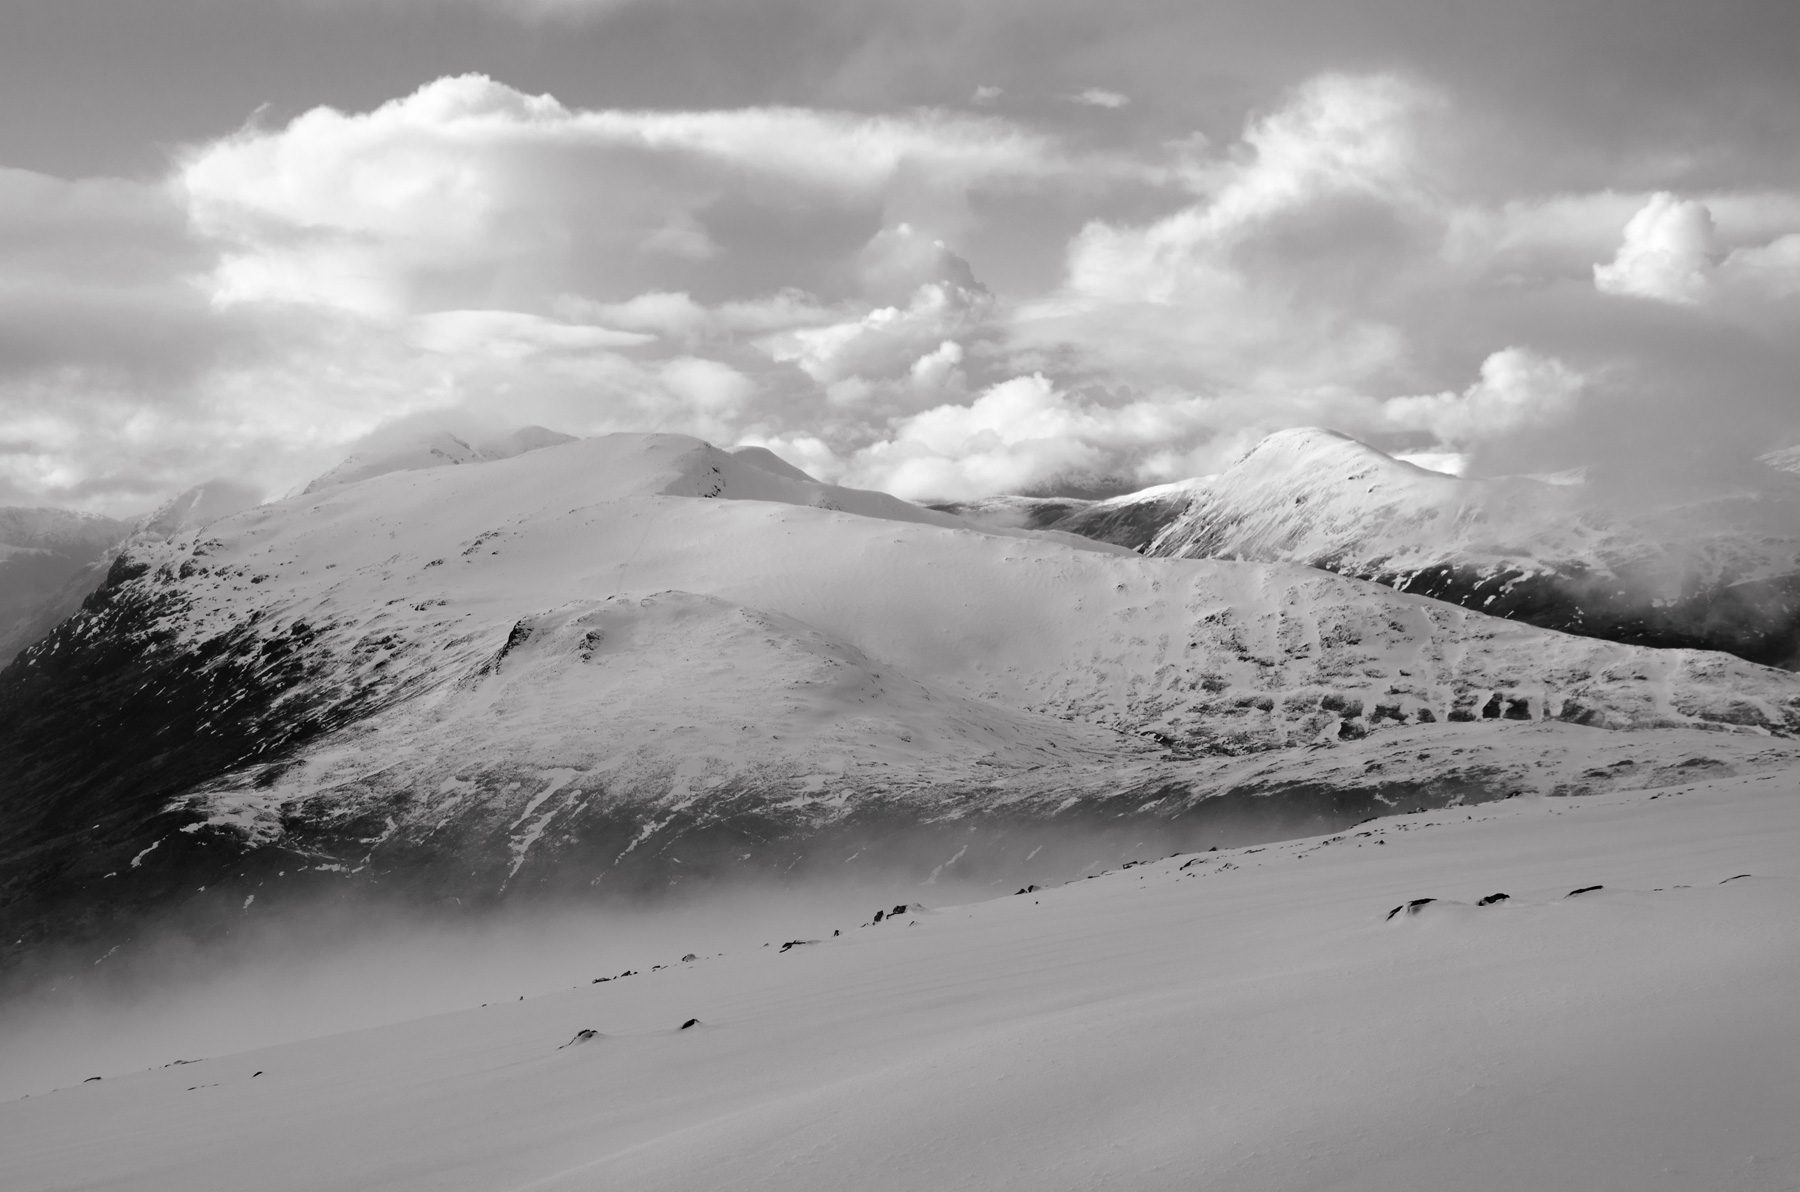 Beinn a Chrulaiste after the storm